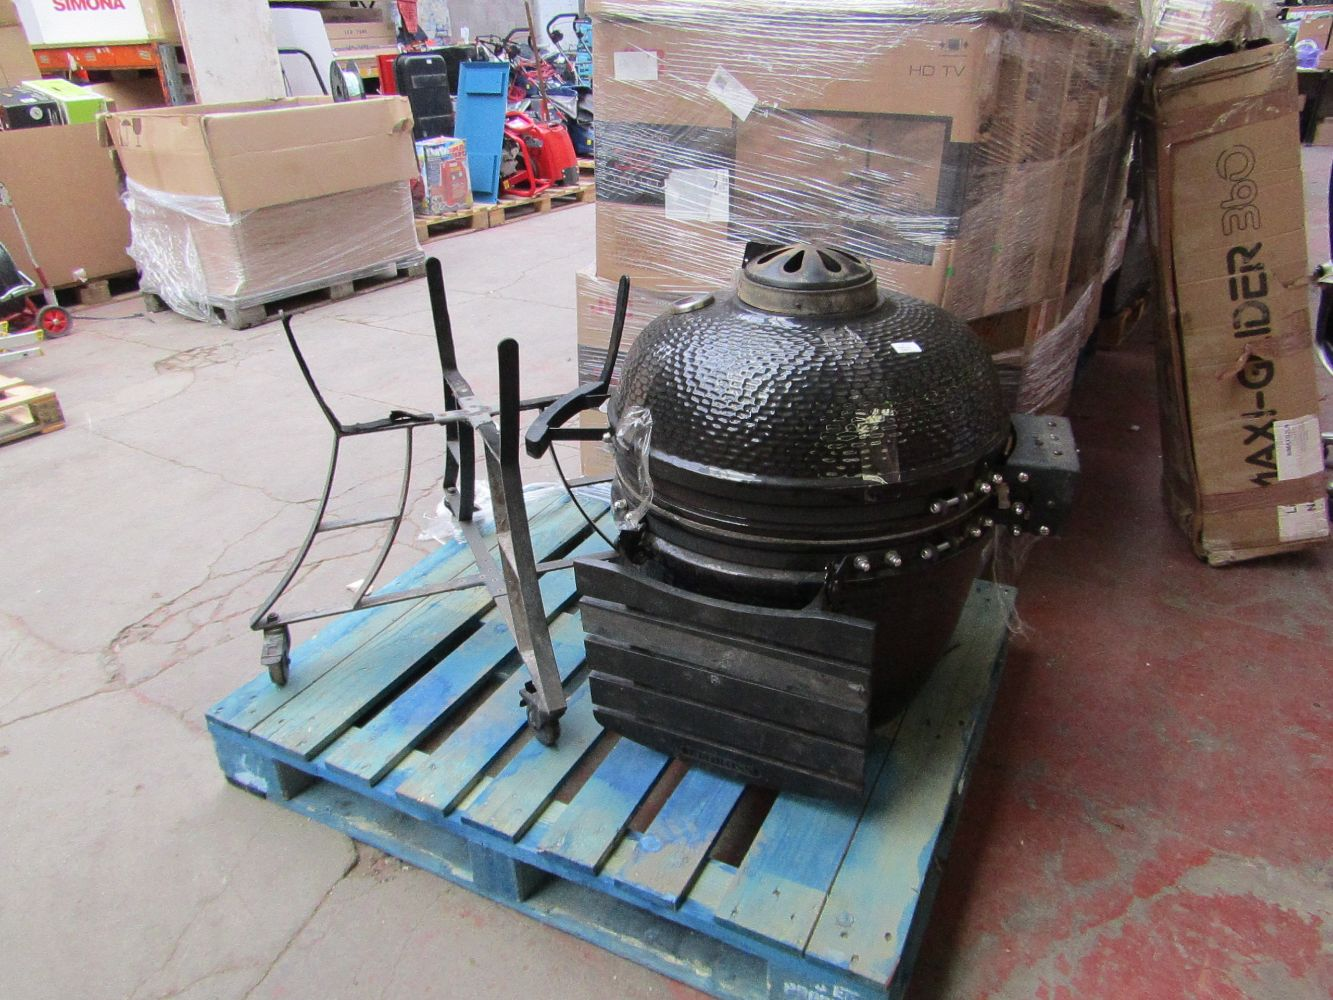 Wednesday Mixed Auction containing fitness, household items and electricals